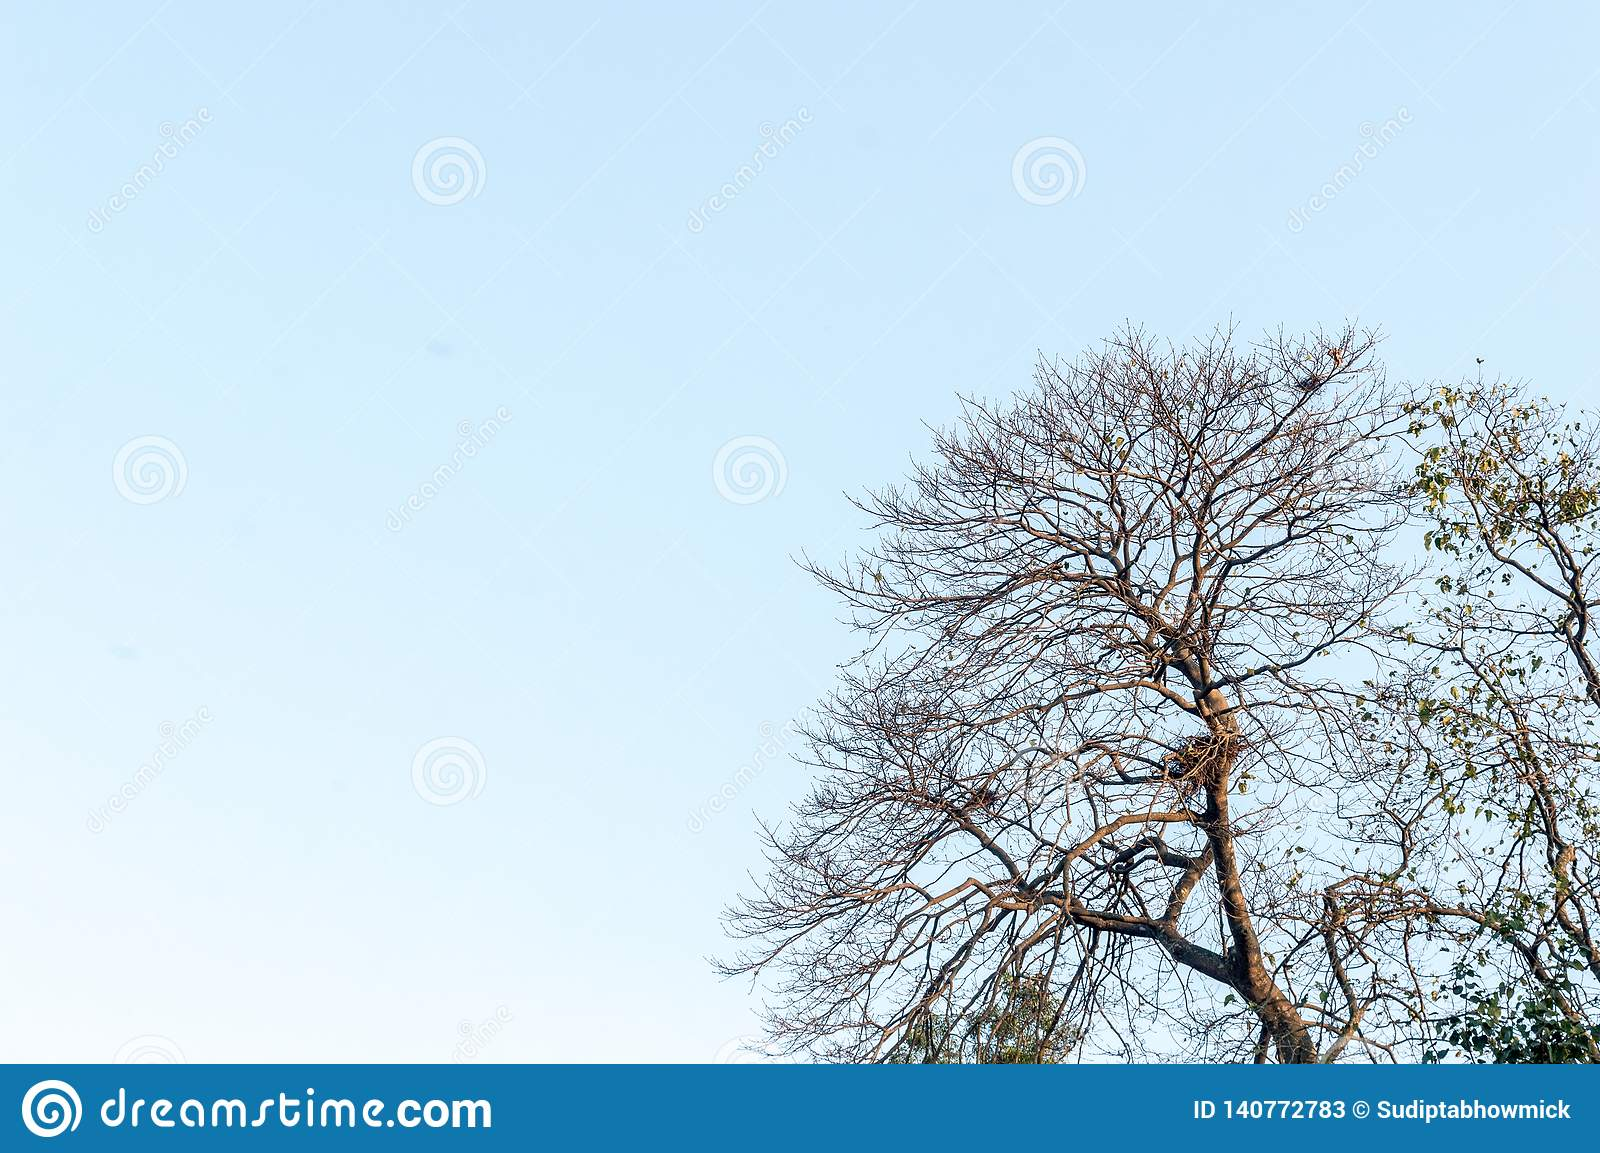 Bare Dead Trees Branch Blue Sky Background Stock Image Image Of